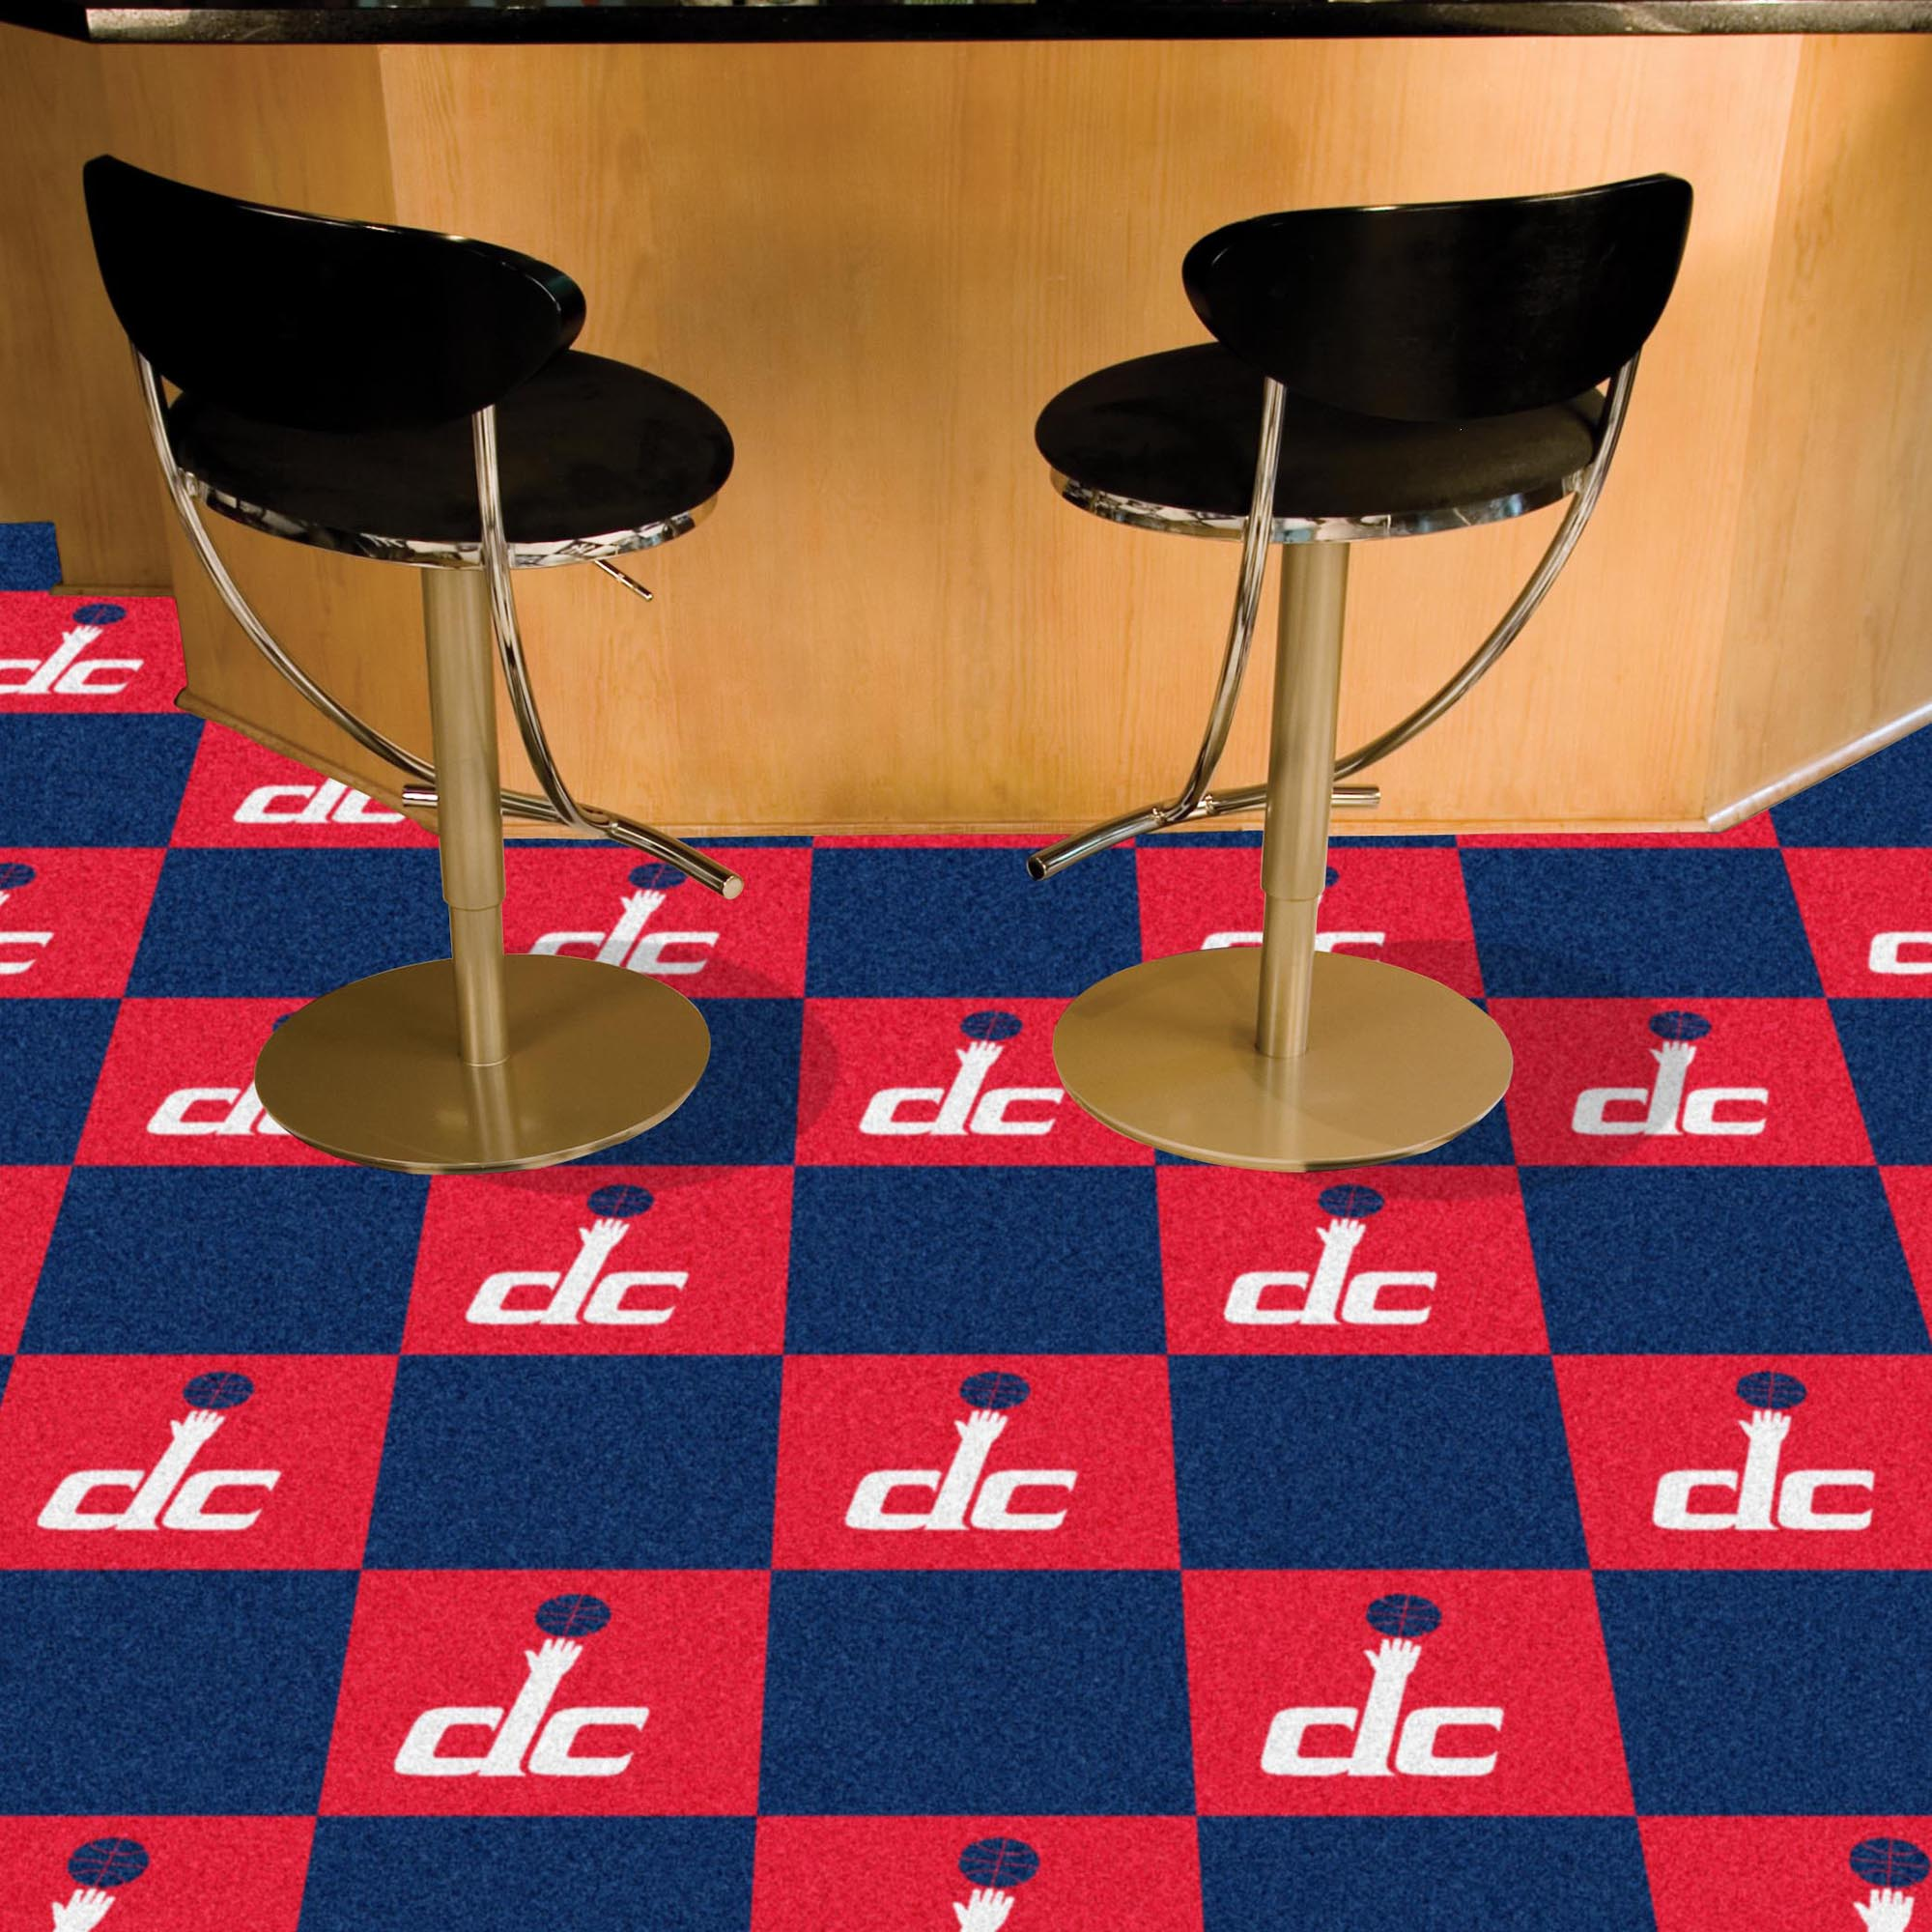 Washington Wizards Carpet Tiles 18x18 in.